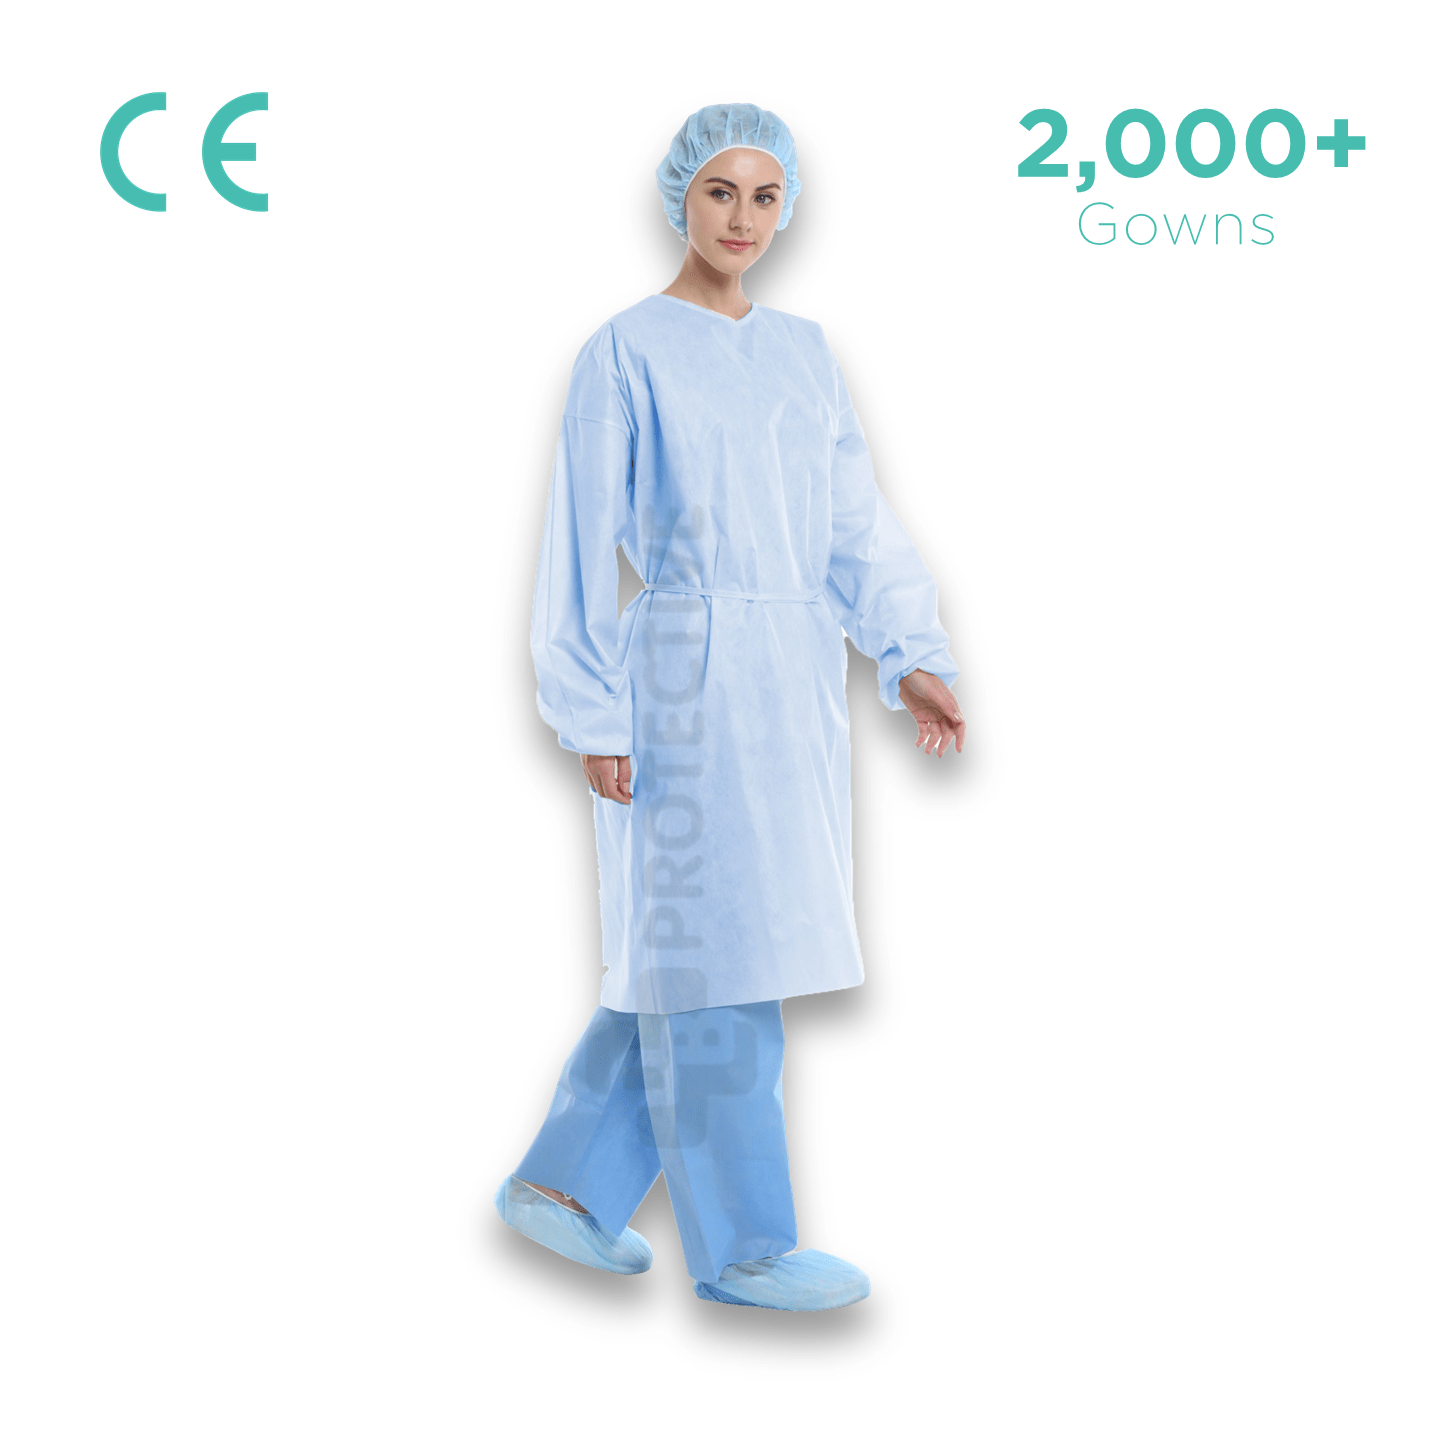 SMS Disposable Gowns AAMI Level 1 - Pack of 2,000. - USA Medical Supply - DB Protective